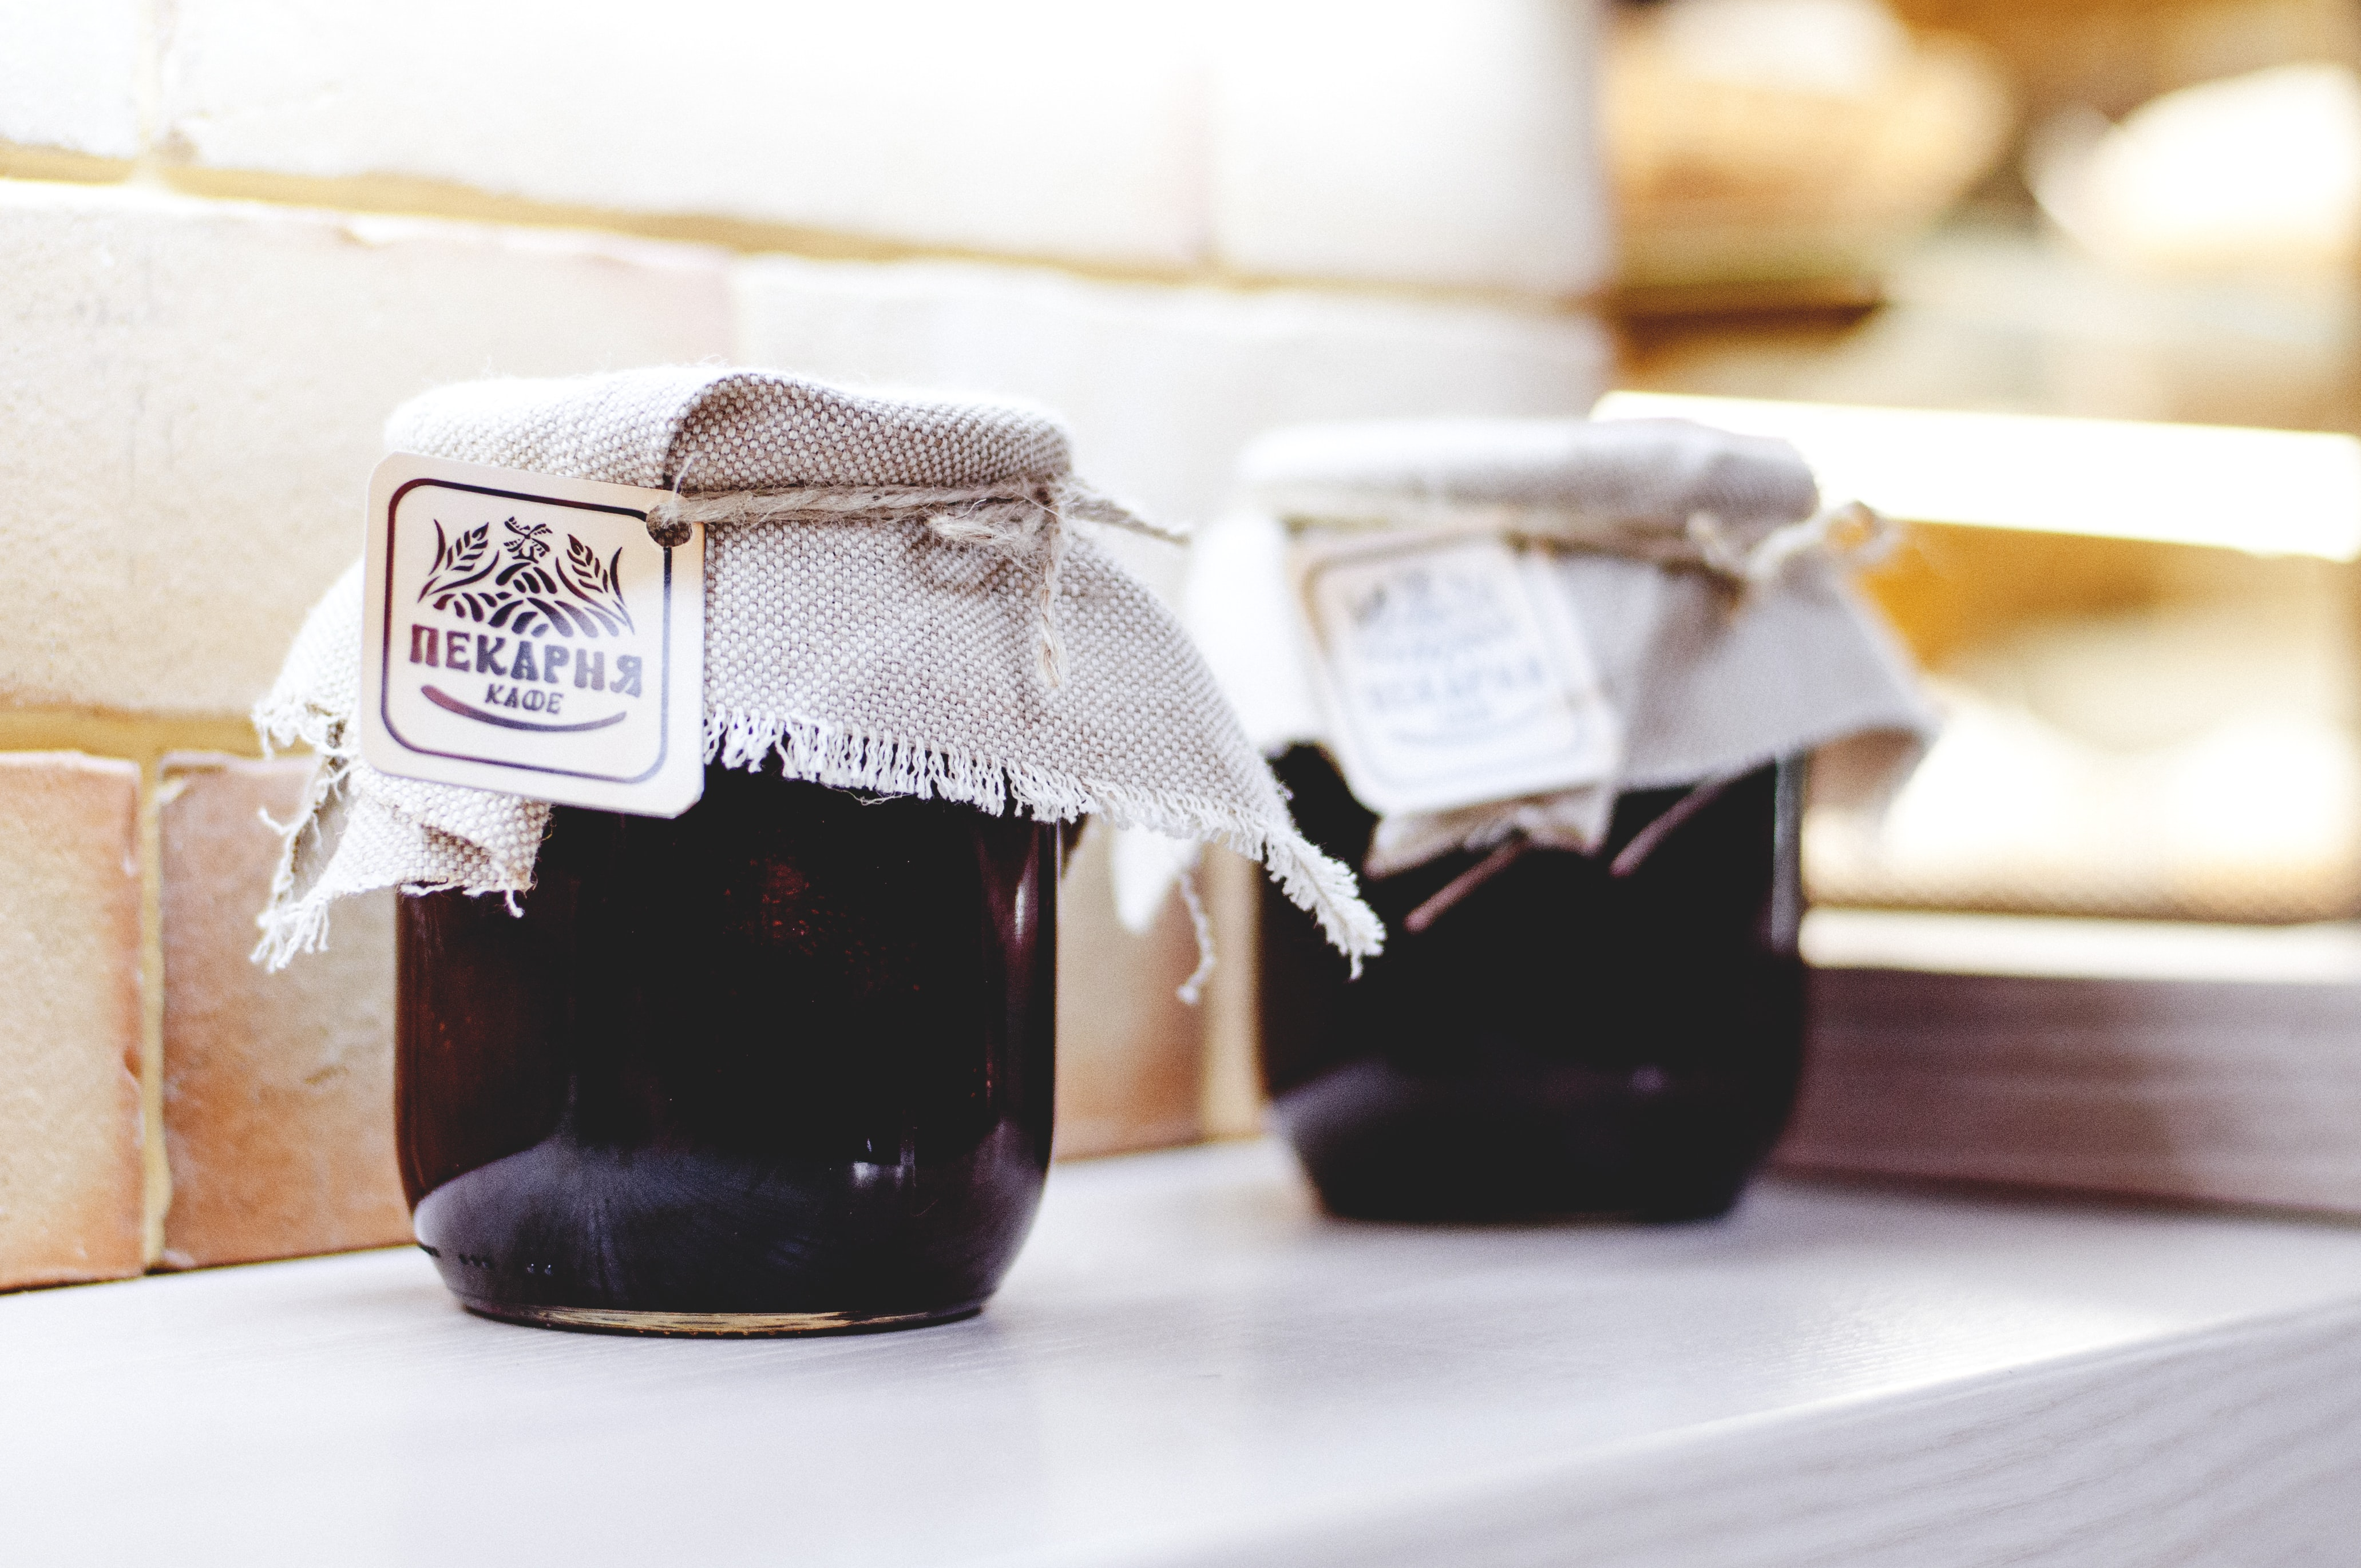 Jars of homemade jelly and fruit preserves